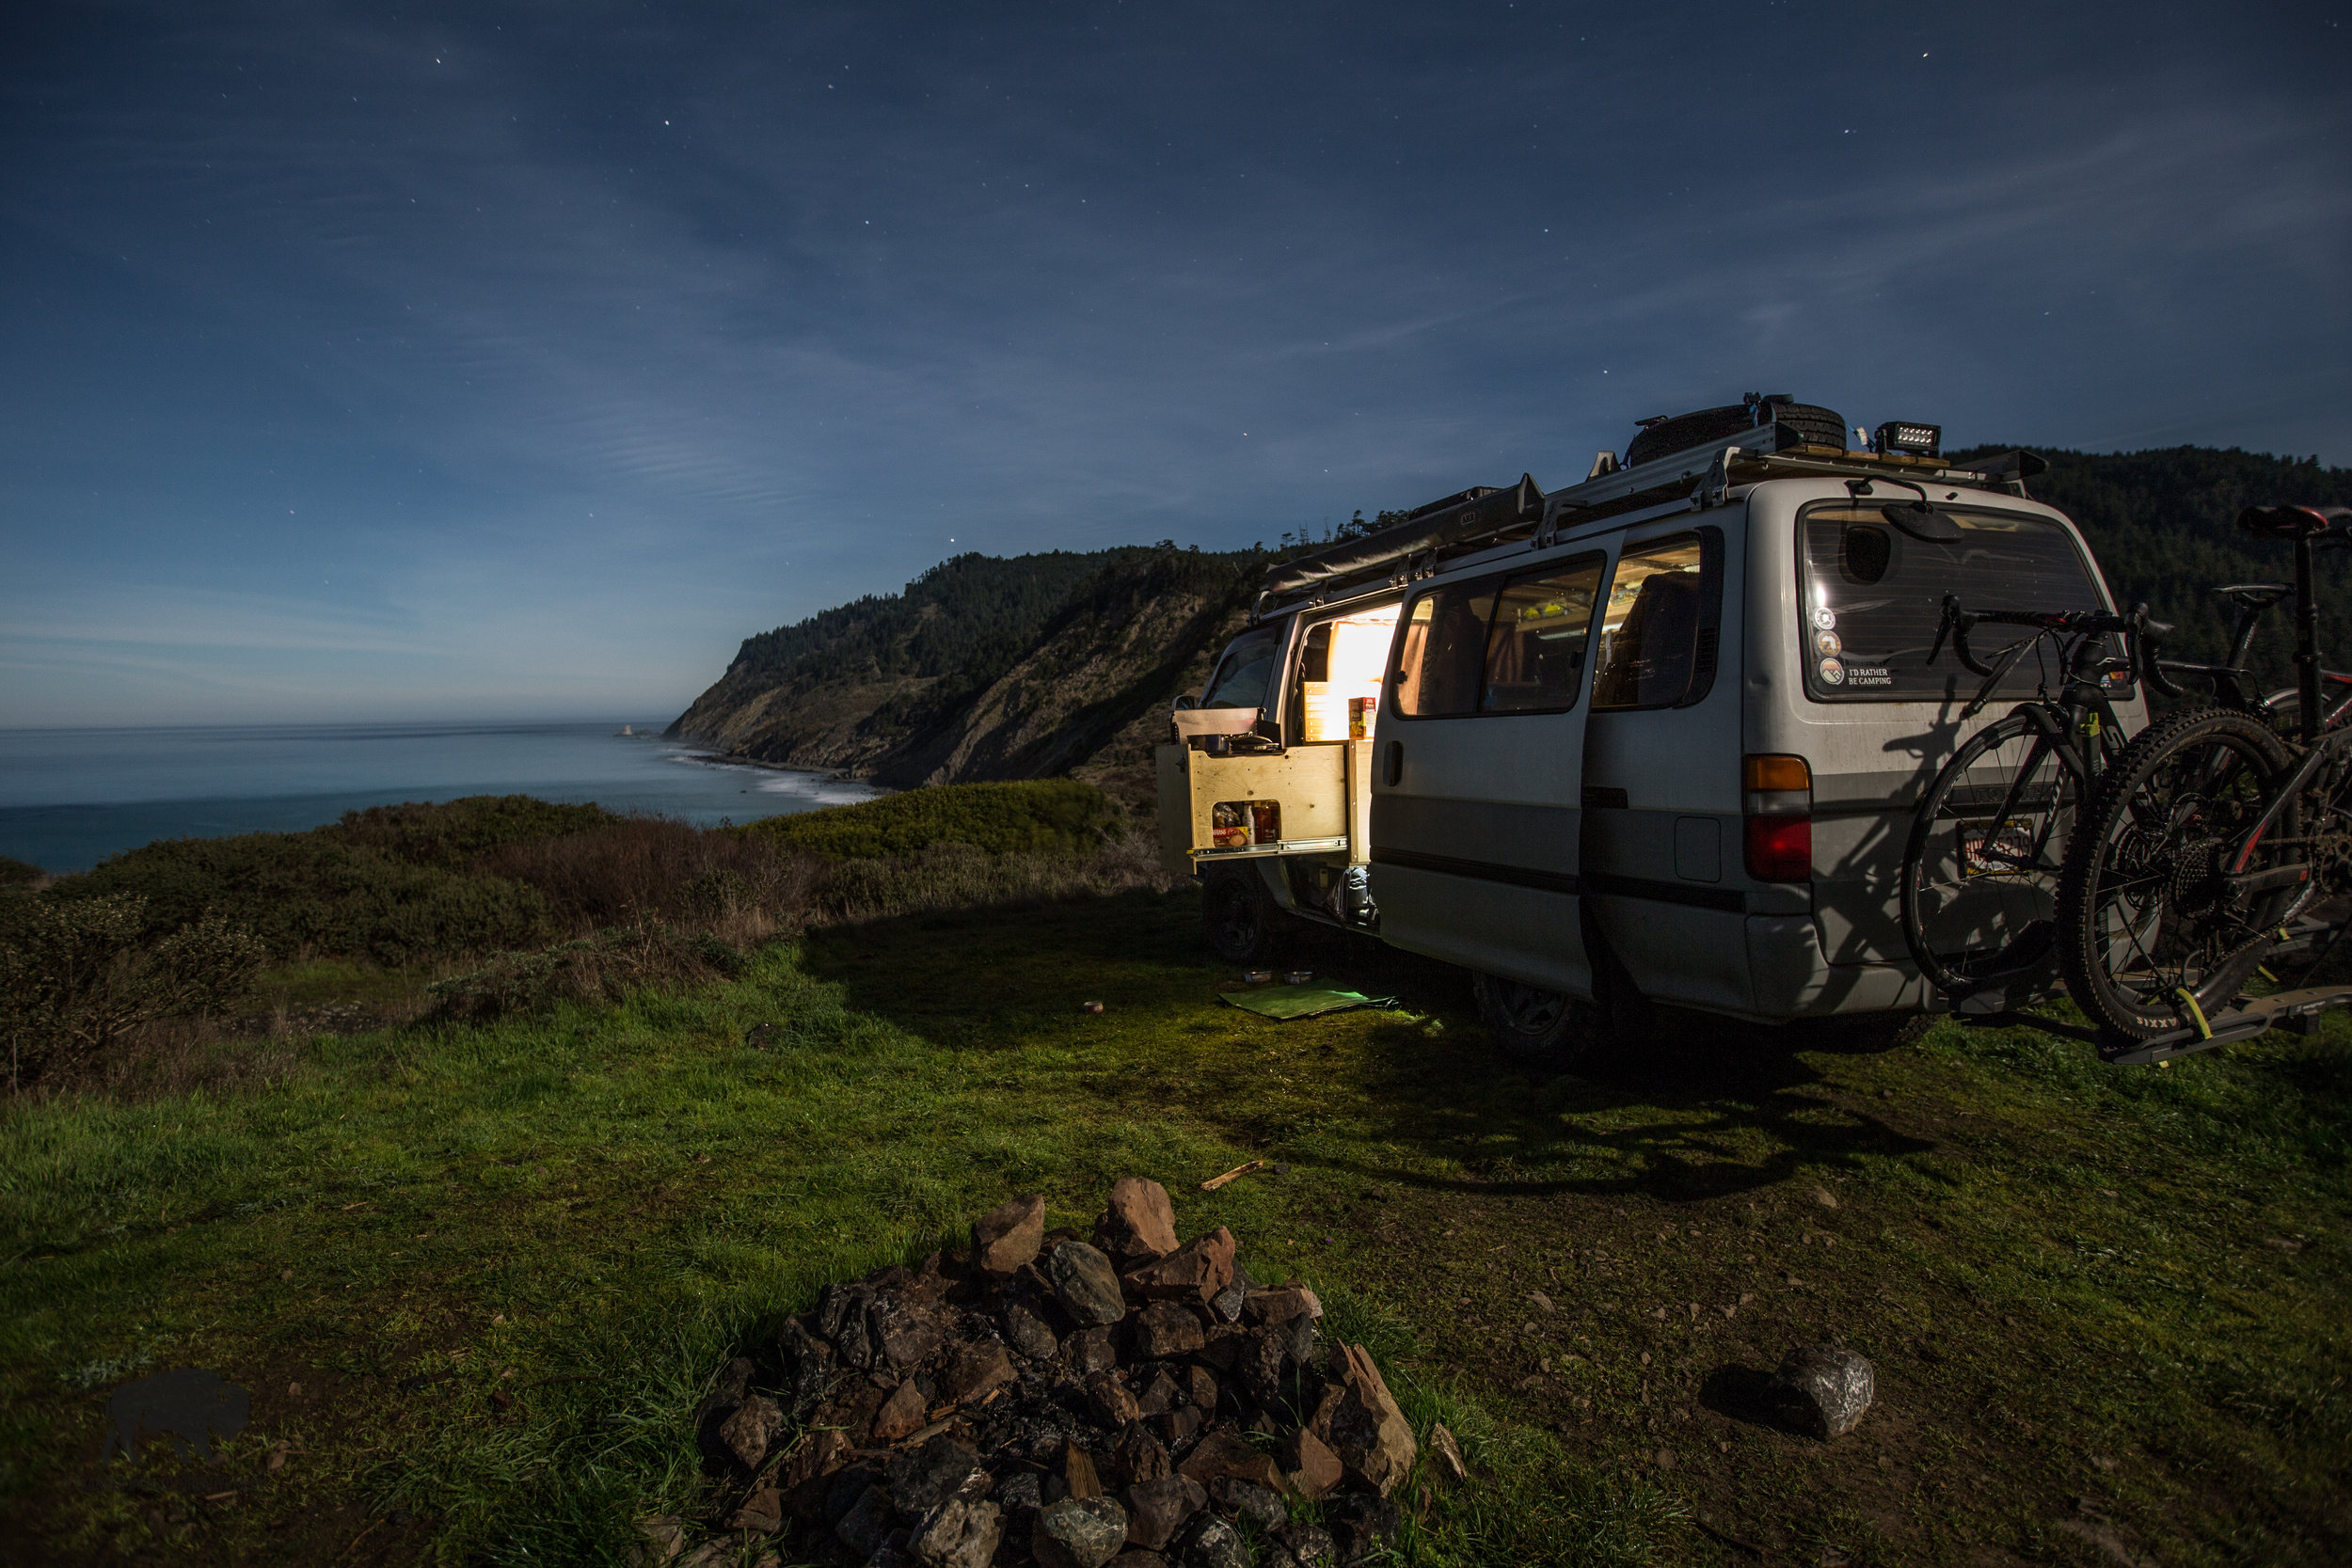 vanlife 3 (25 of 26).jpg